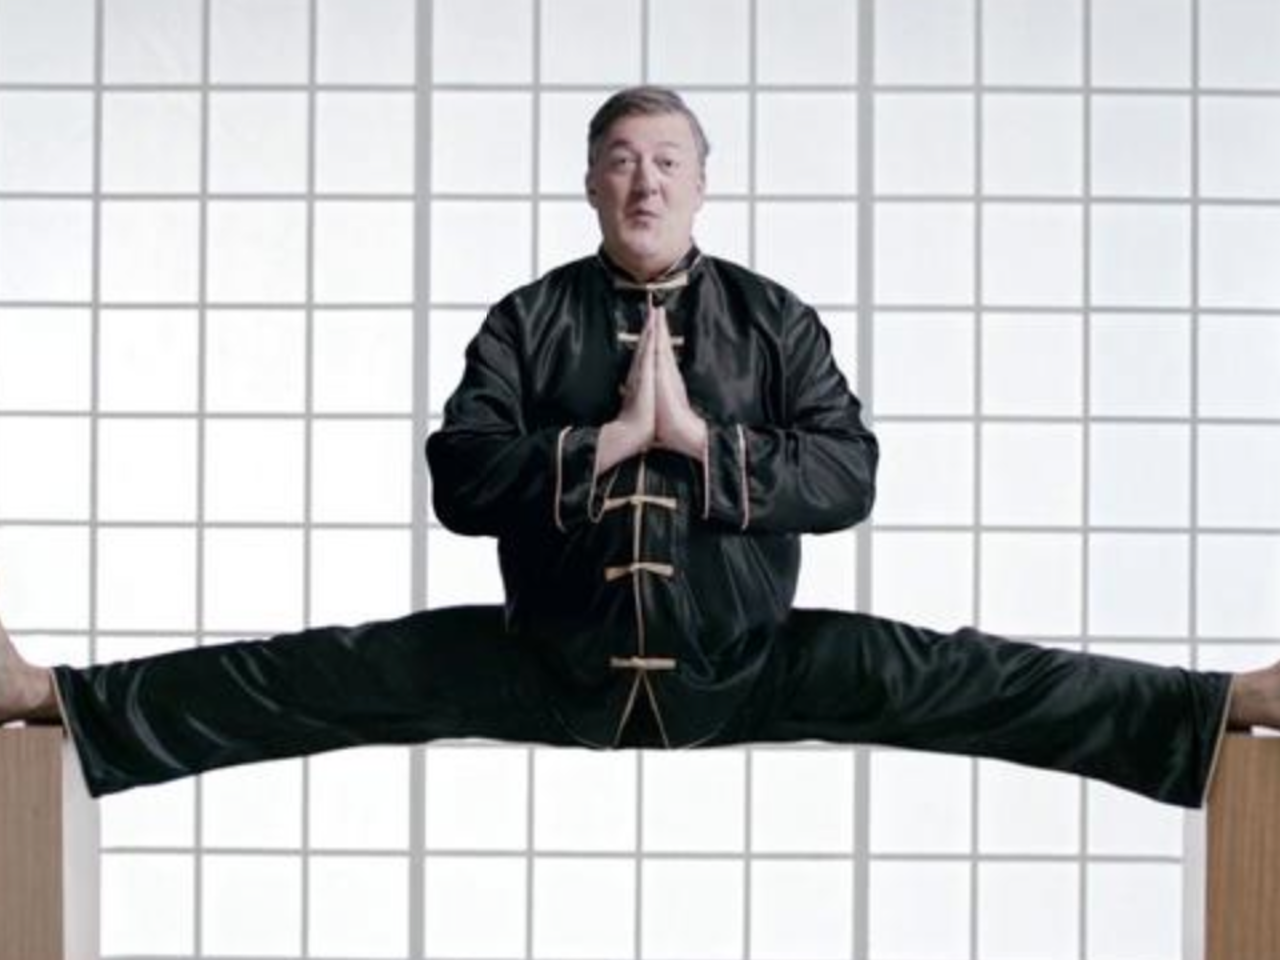 virgin media, stephen fry 'kung fu'